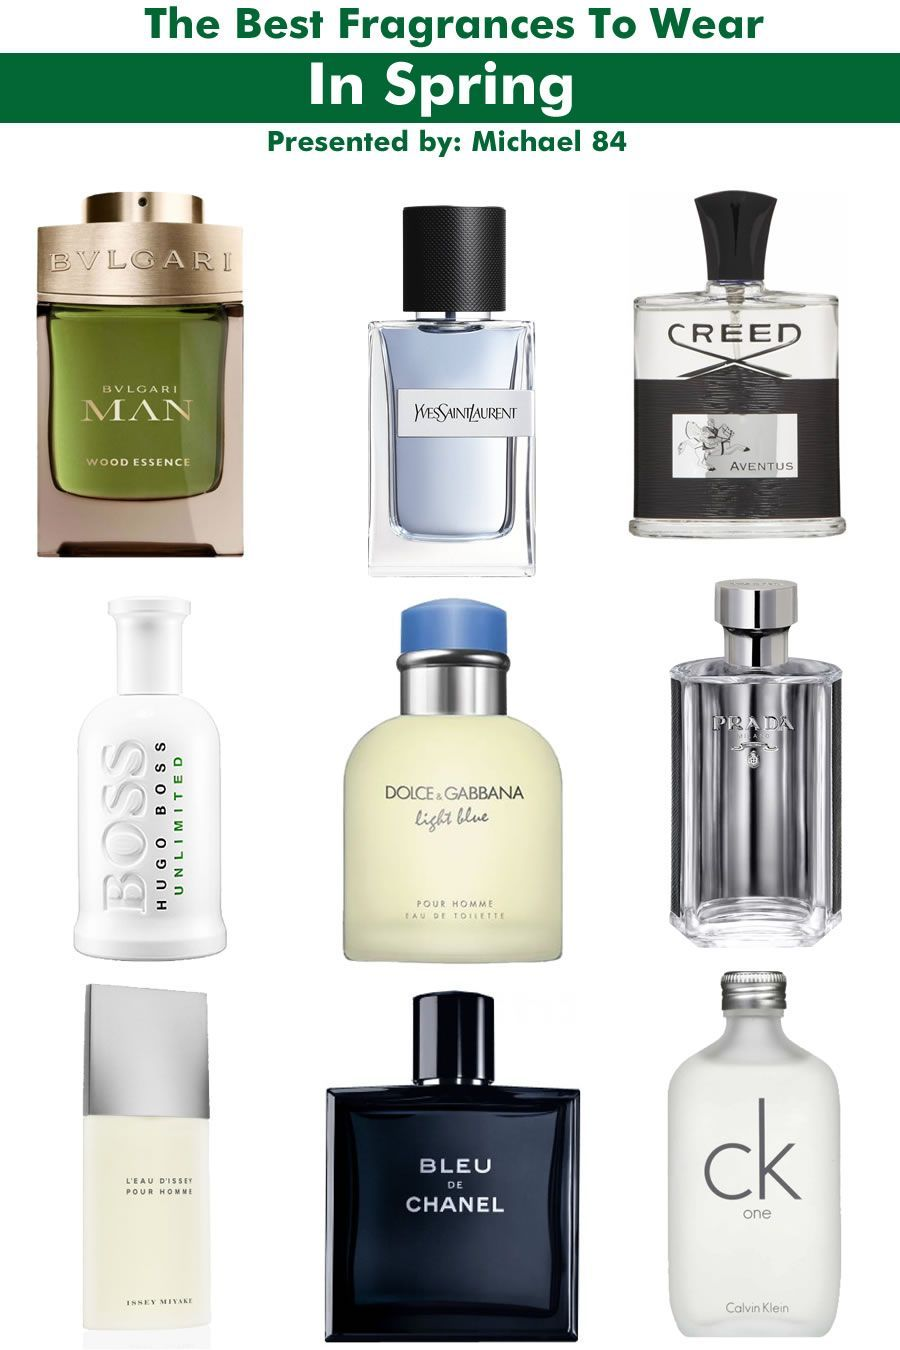 Fragrance Aftershave Brands For Men And Women Up To 80 Off